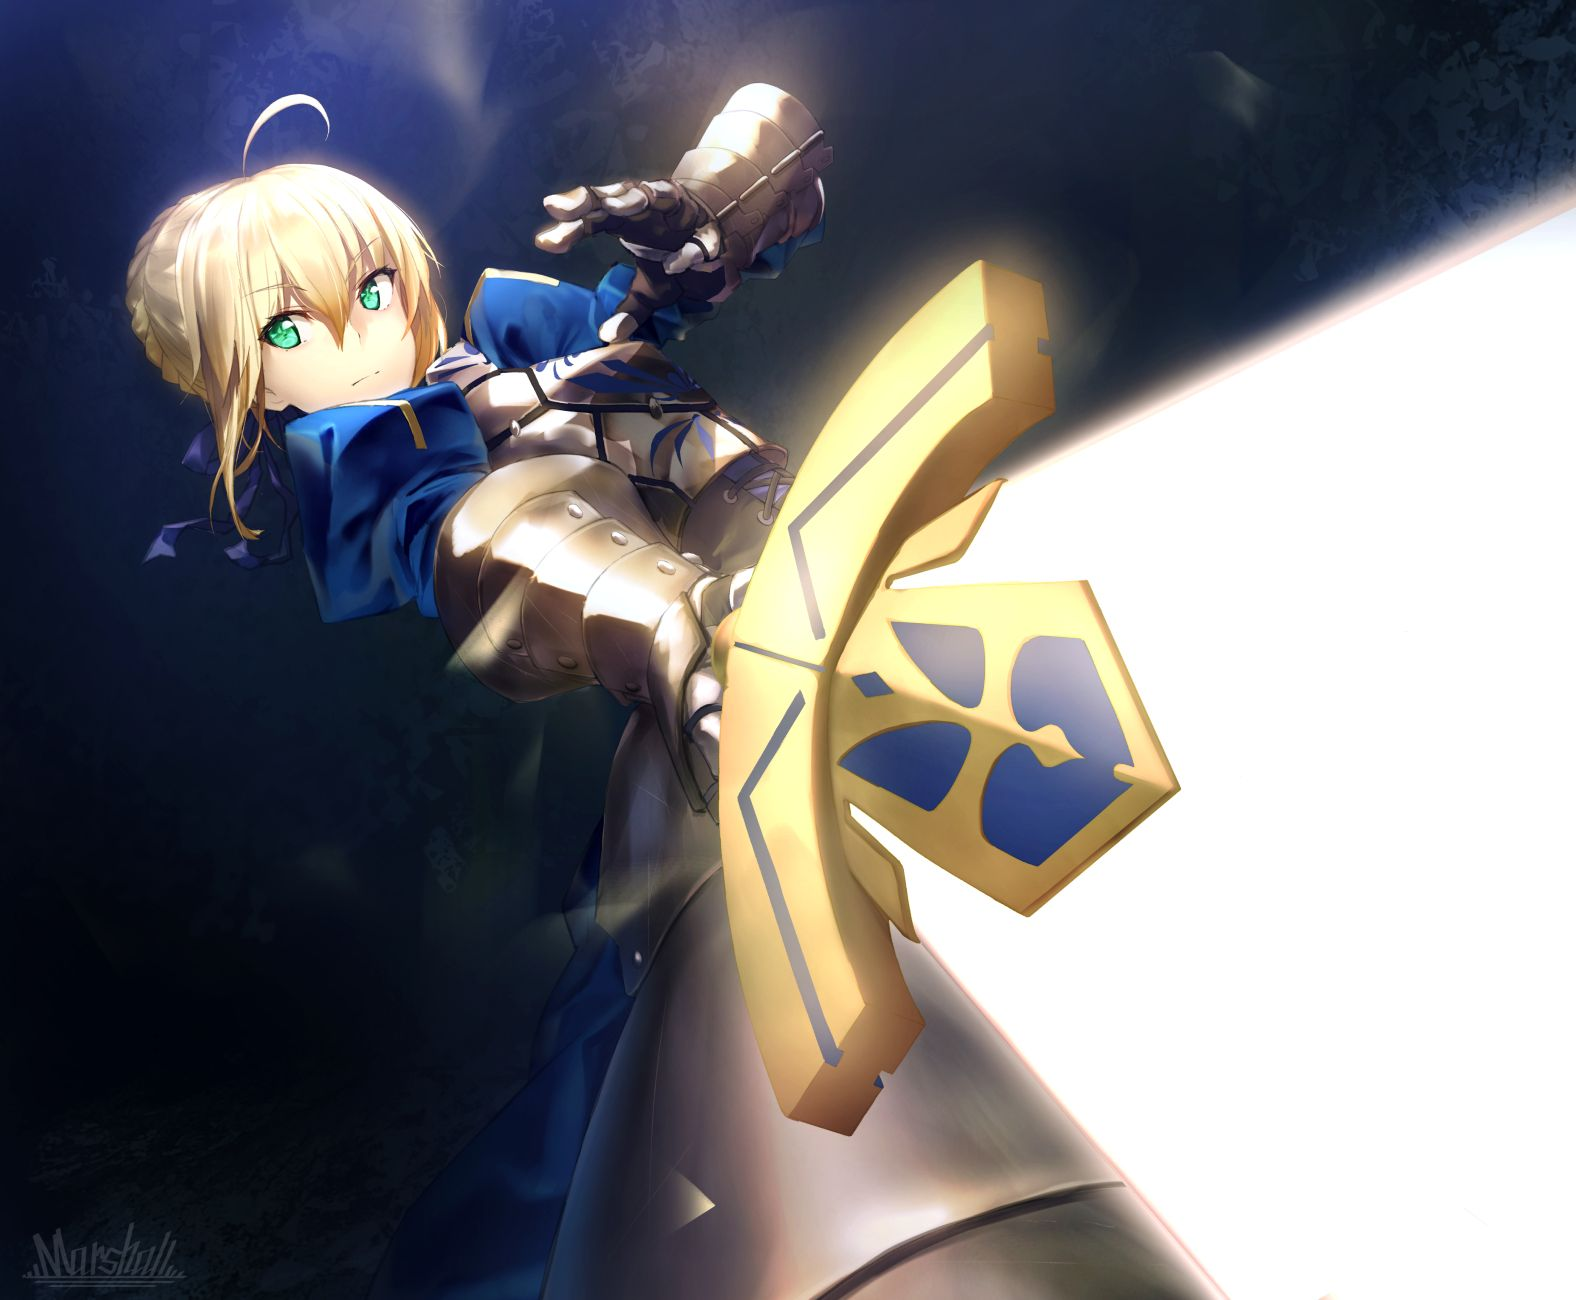 Saber Artoria Fate anime series, Fate stay night